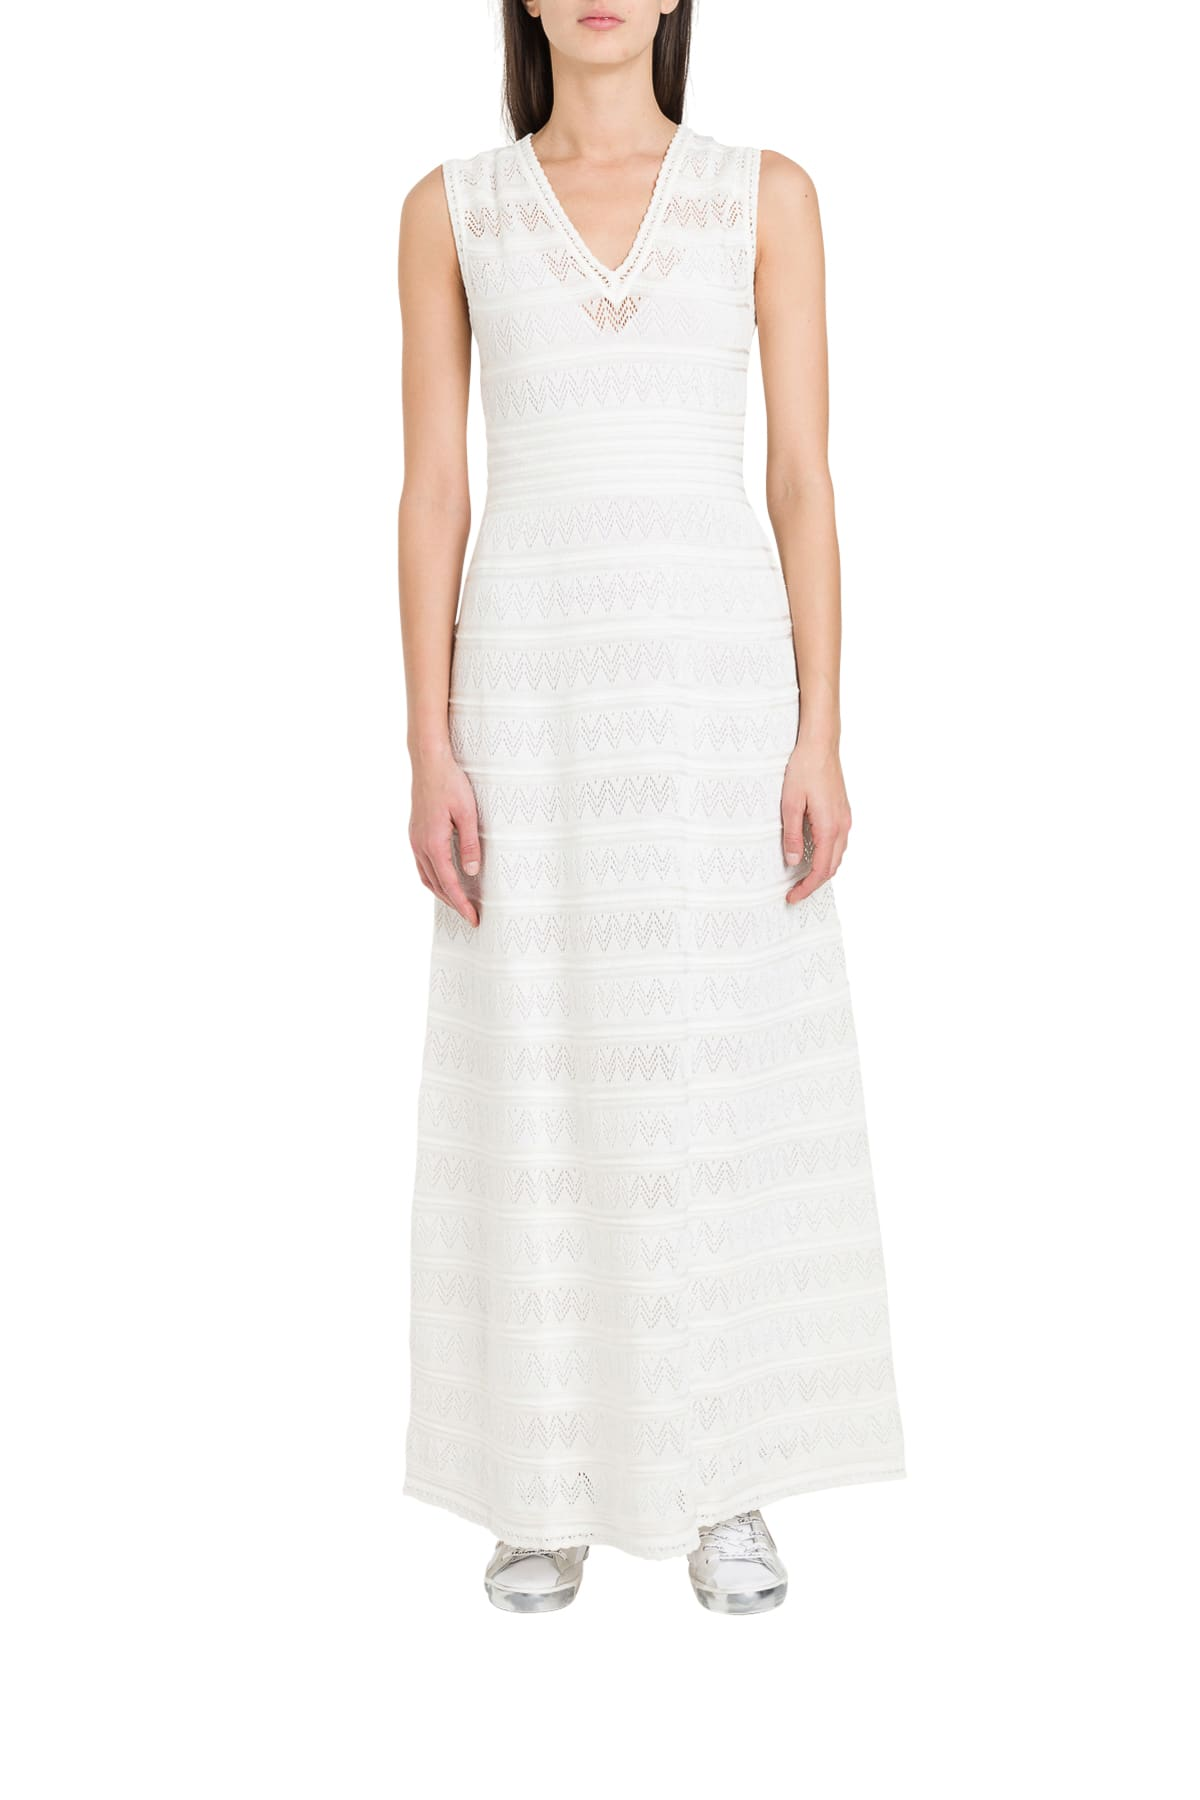 Buy M Missoni Maxi Dress In Openwork Knit online, shop M Missoni with free shipping